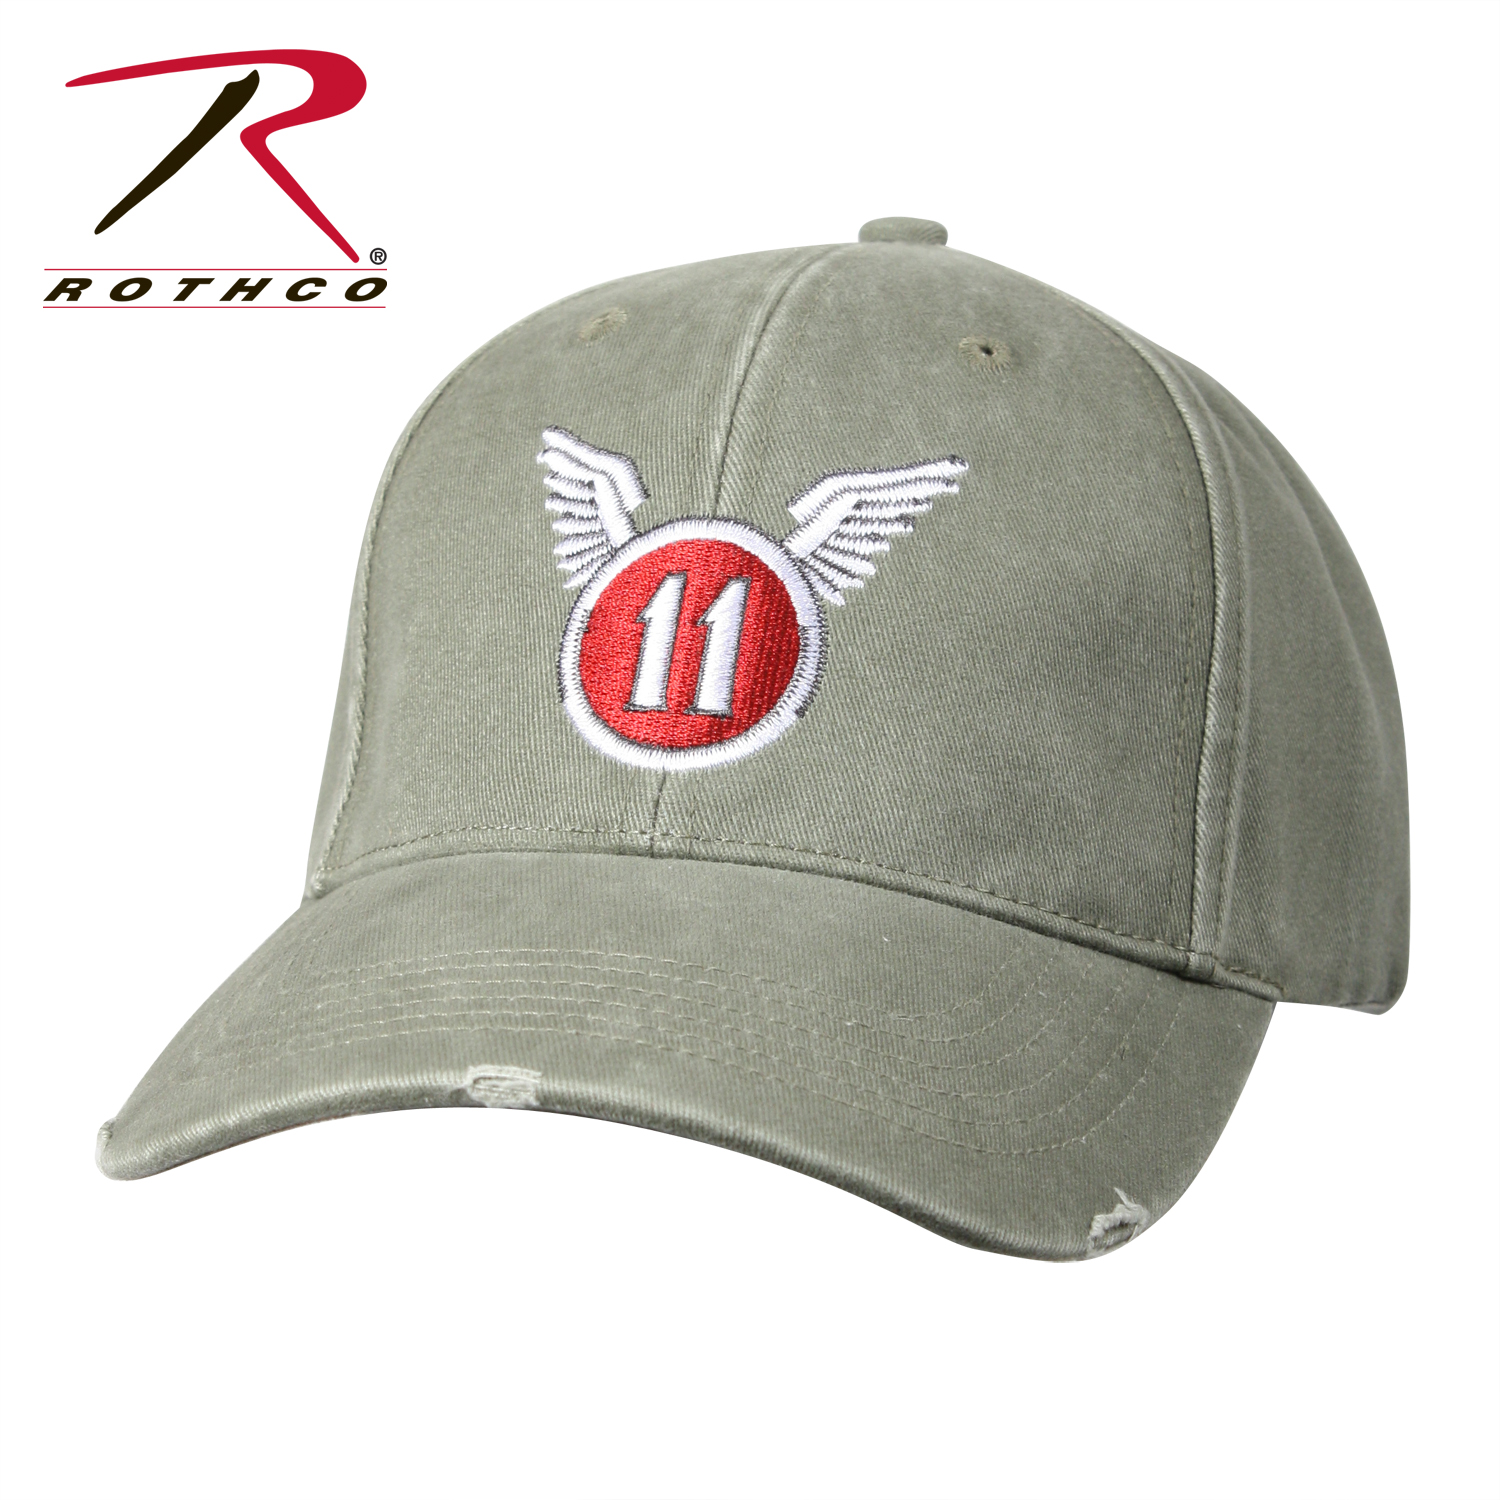 029f0ea1485 Rothco Vintage   11th Airborne   Low Profile Cap